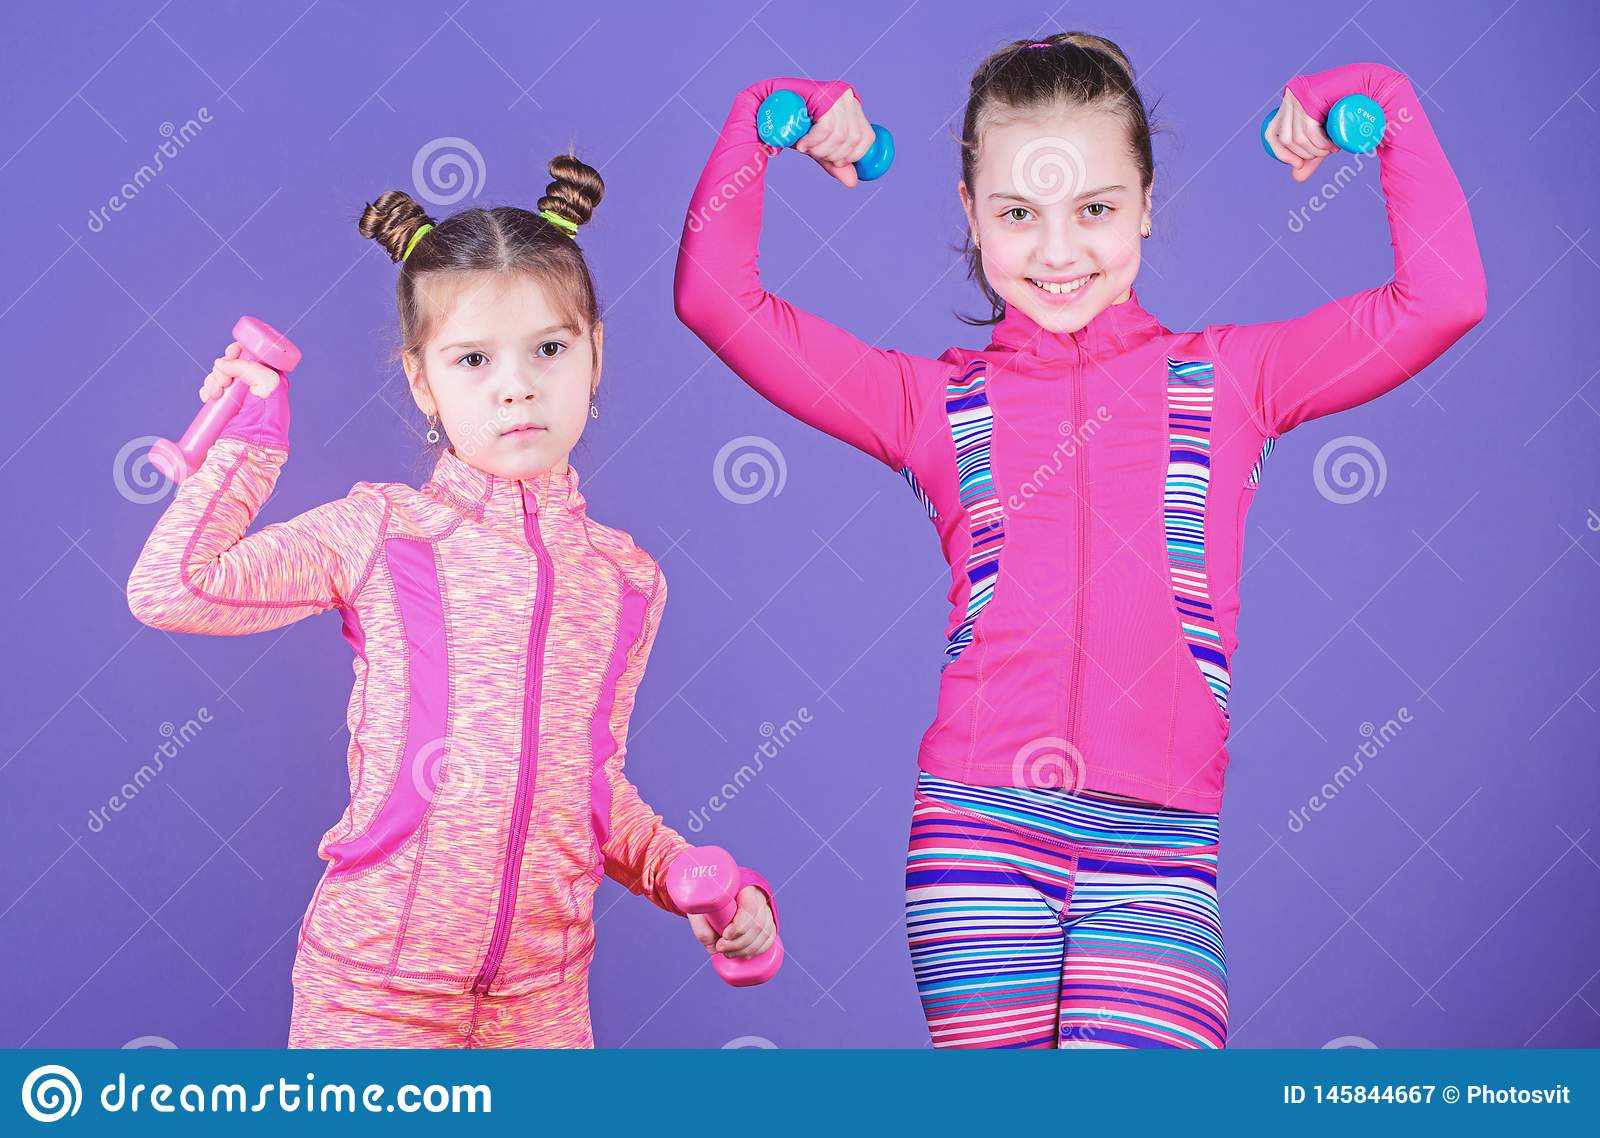 Active lifestyle. Sport and fitness for kids. Cute sisters doing gym fitness exercises with dumbbells. Little children